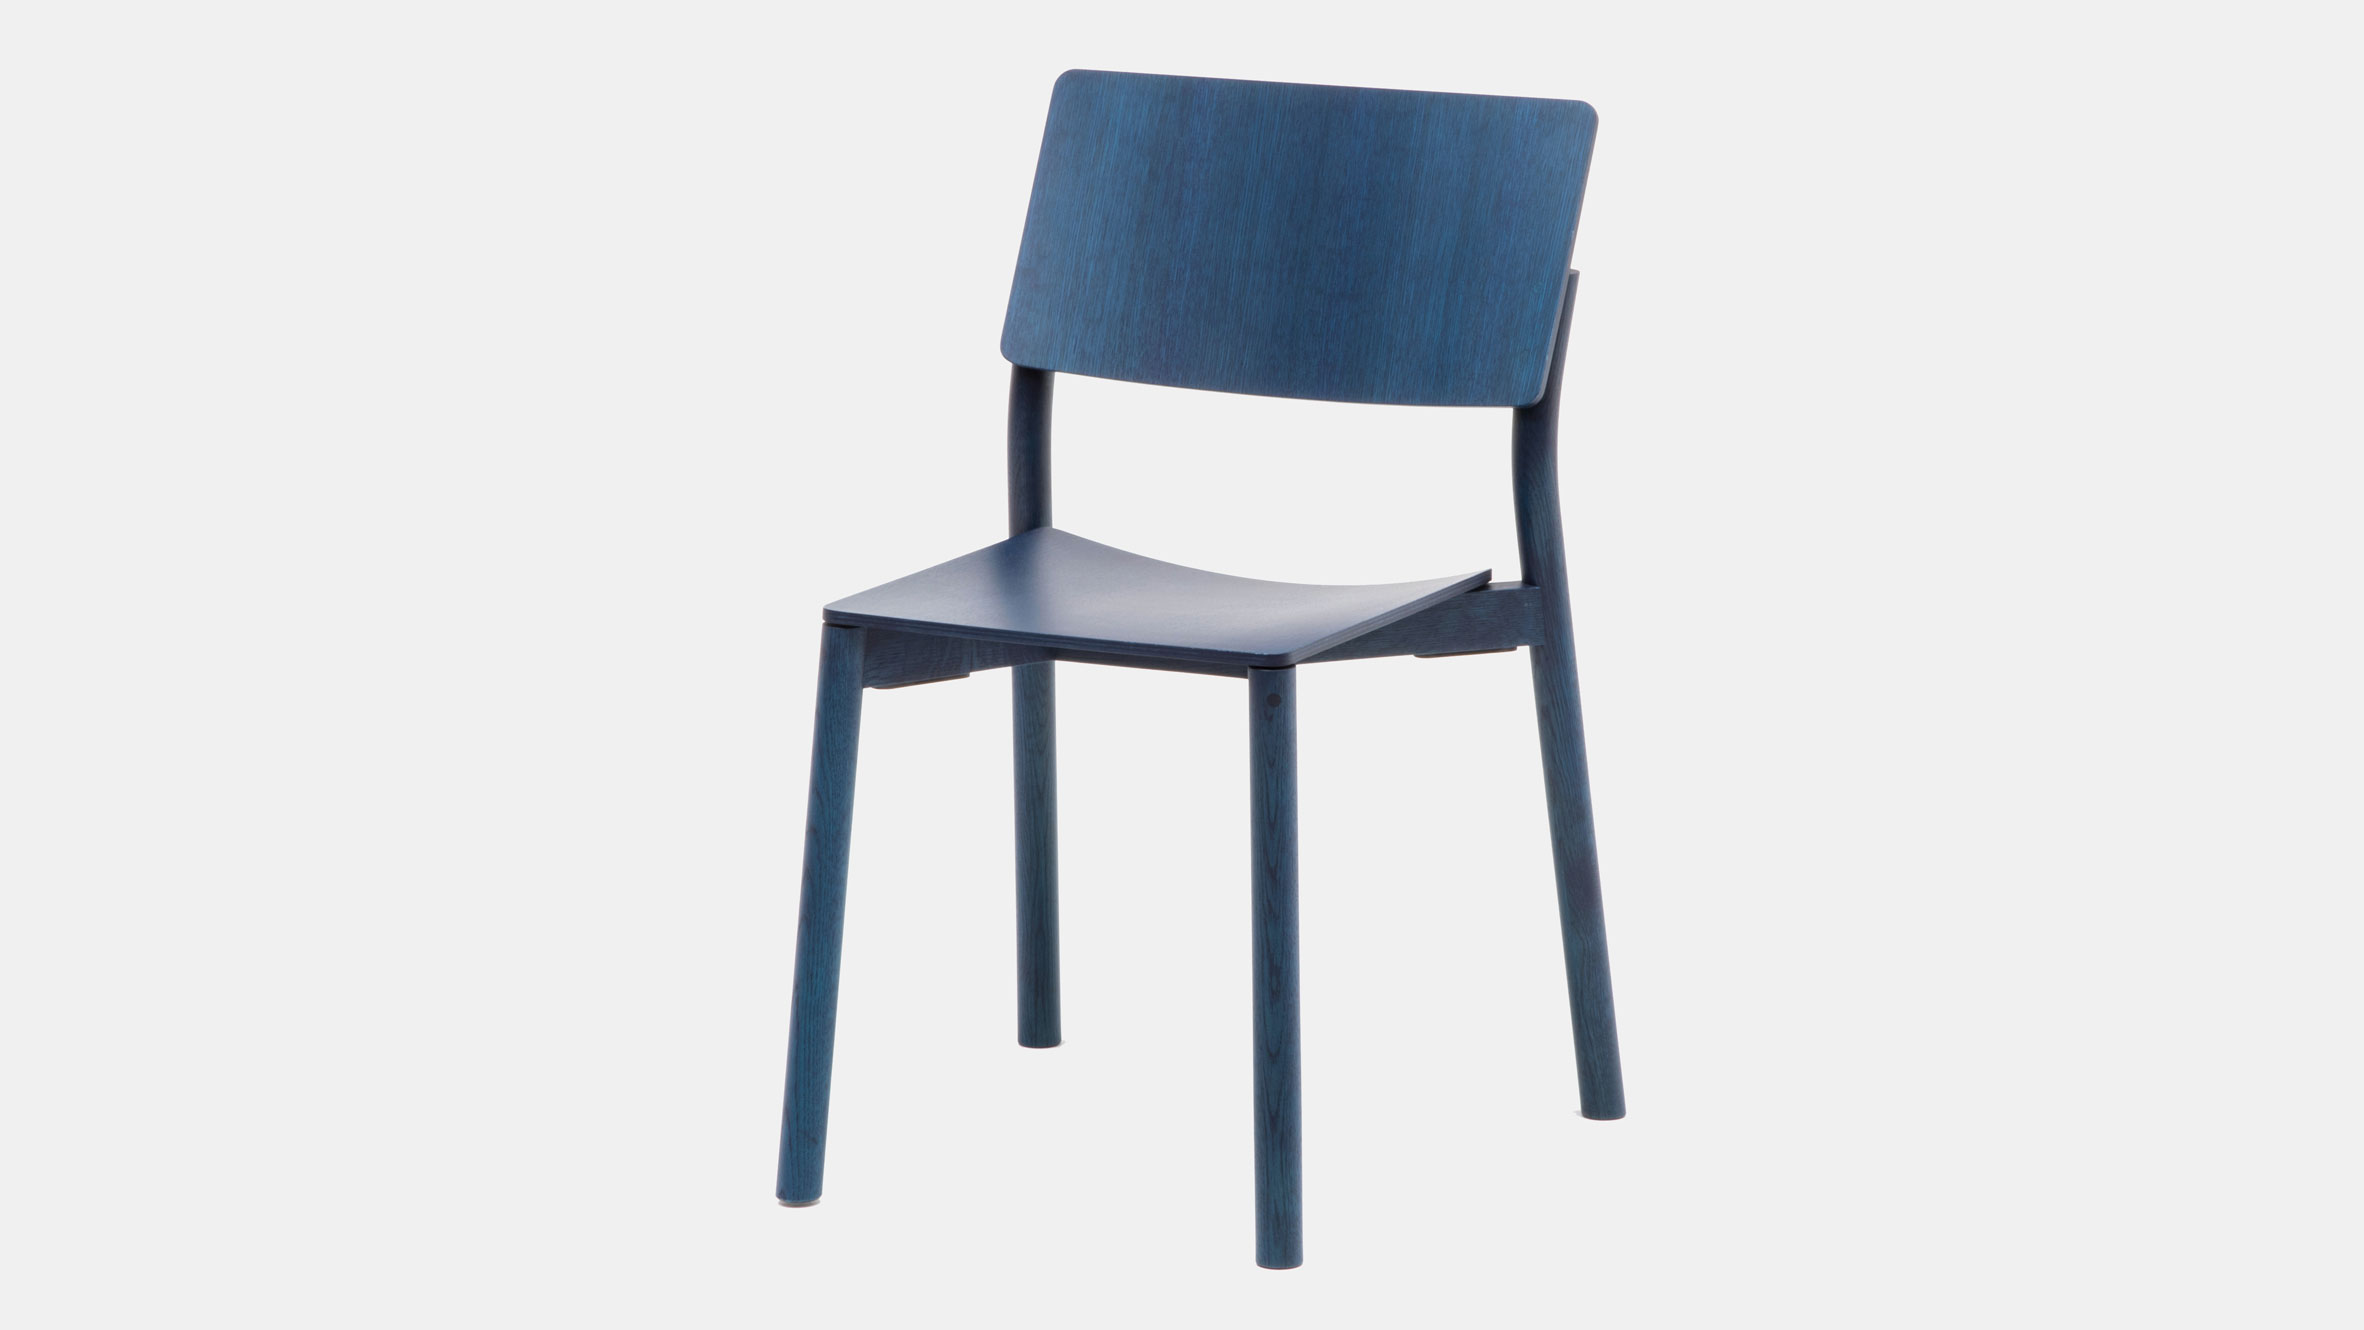 Blue Panorama chair by Geckeler Michels for Karimoku